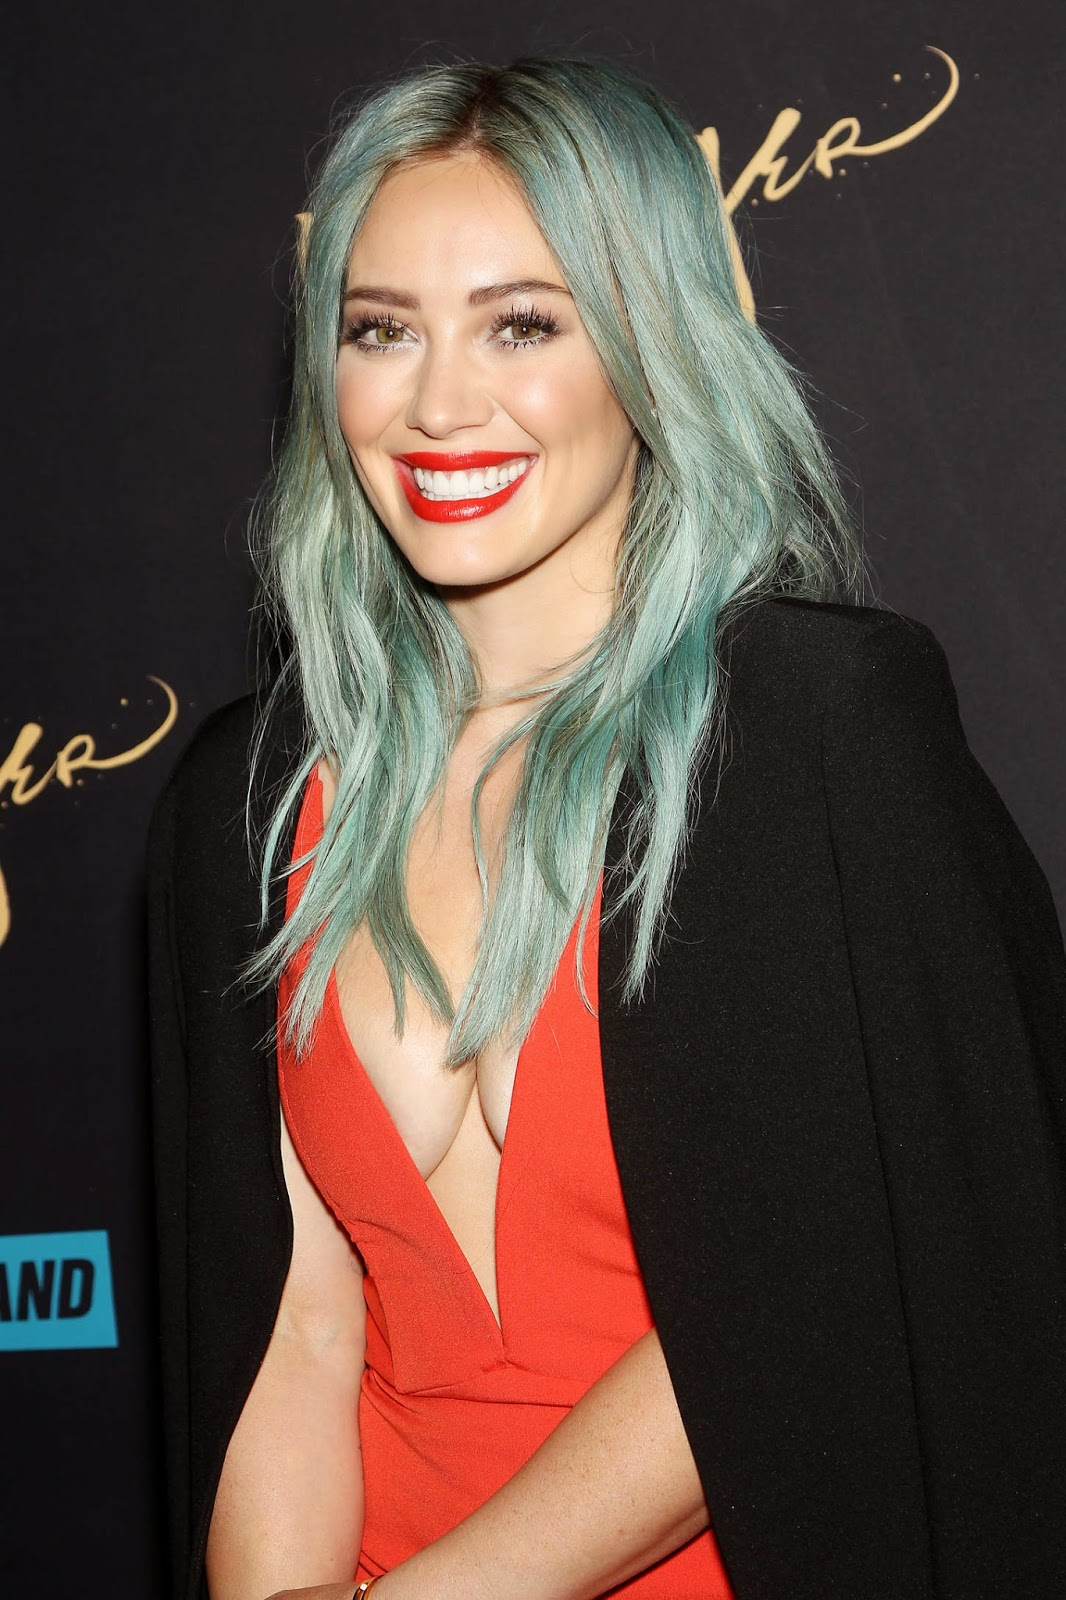 Hilary Duff bares cleavage in a low cut dress at the ... Hilary Duff